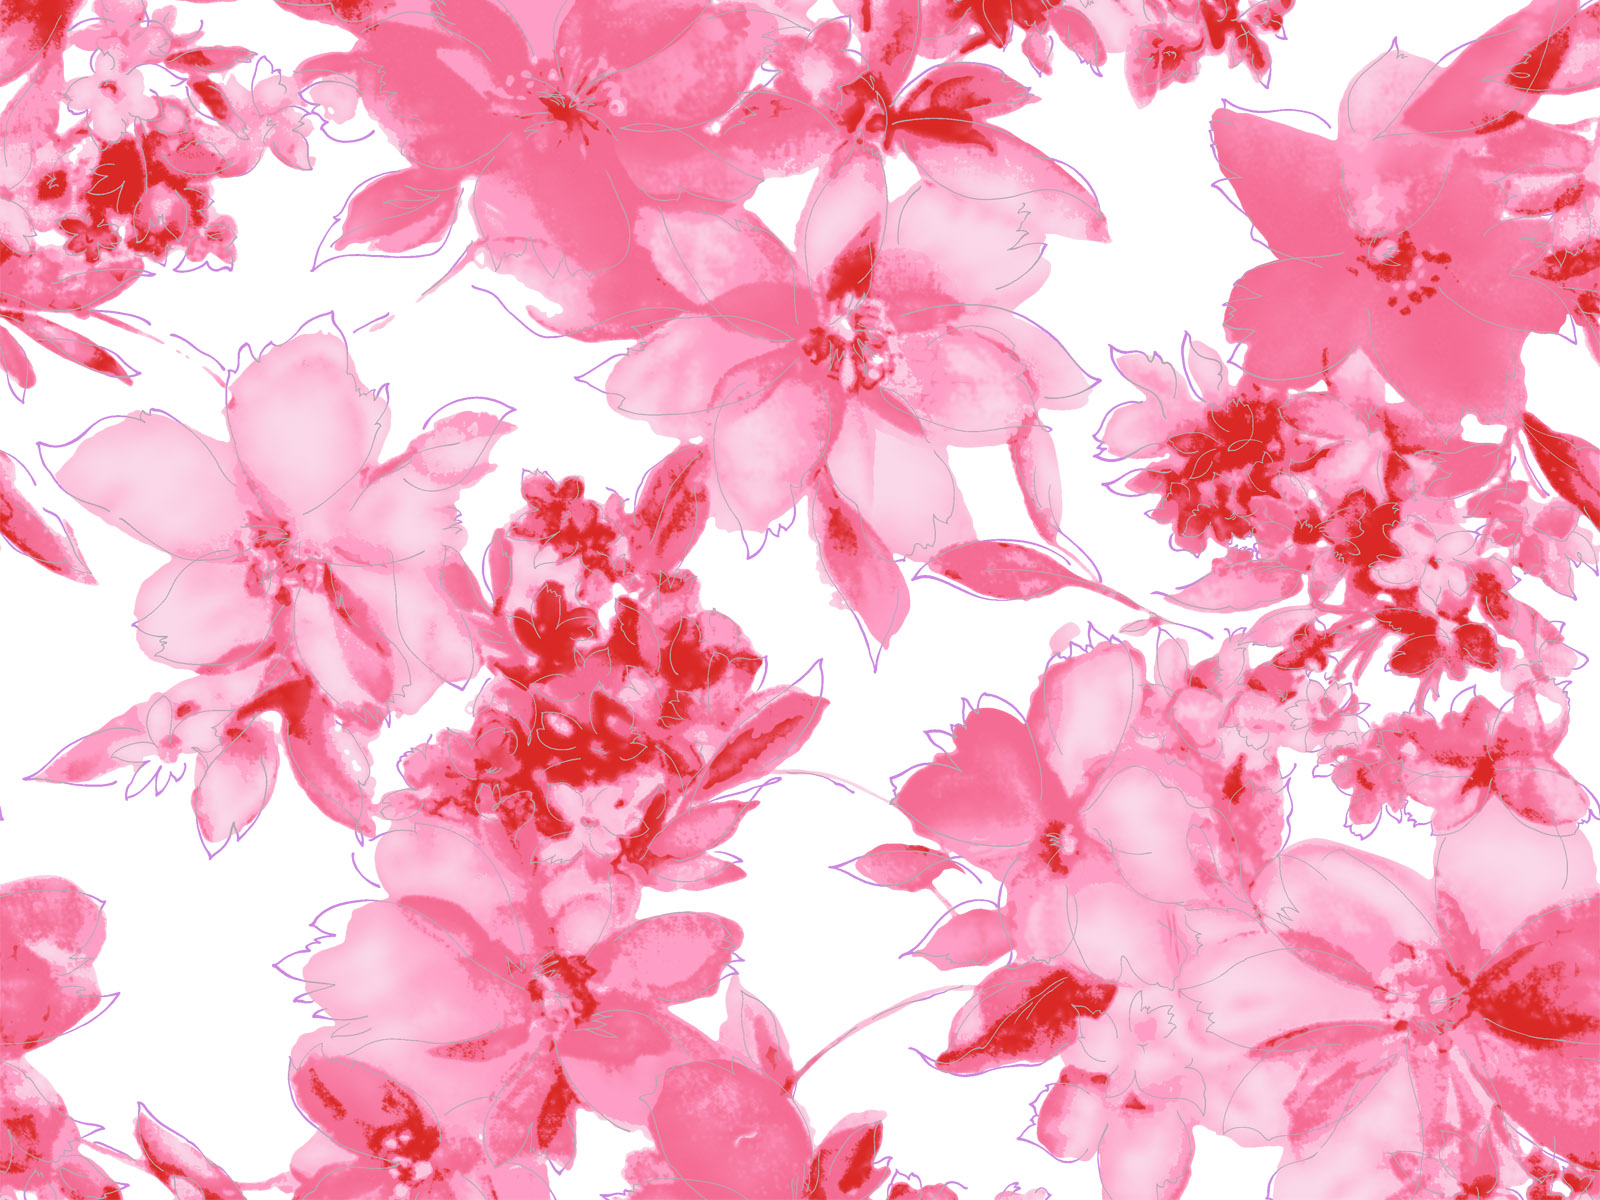 Pink Floral Backgrounds For Powerpoint Templates Ppt Backgrounds